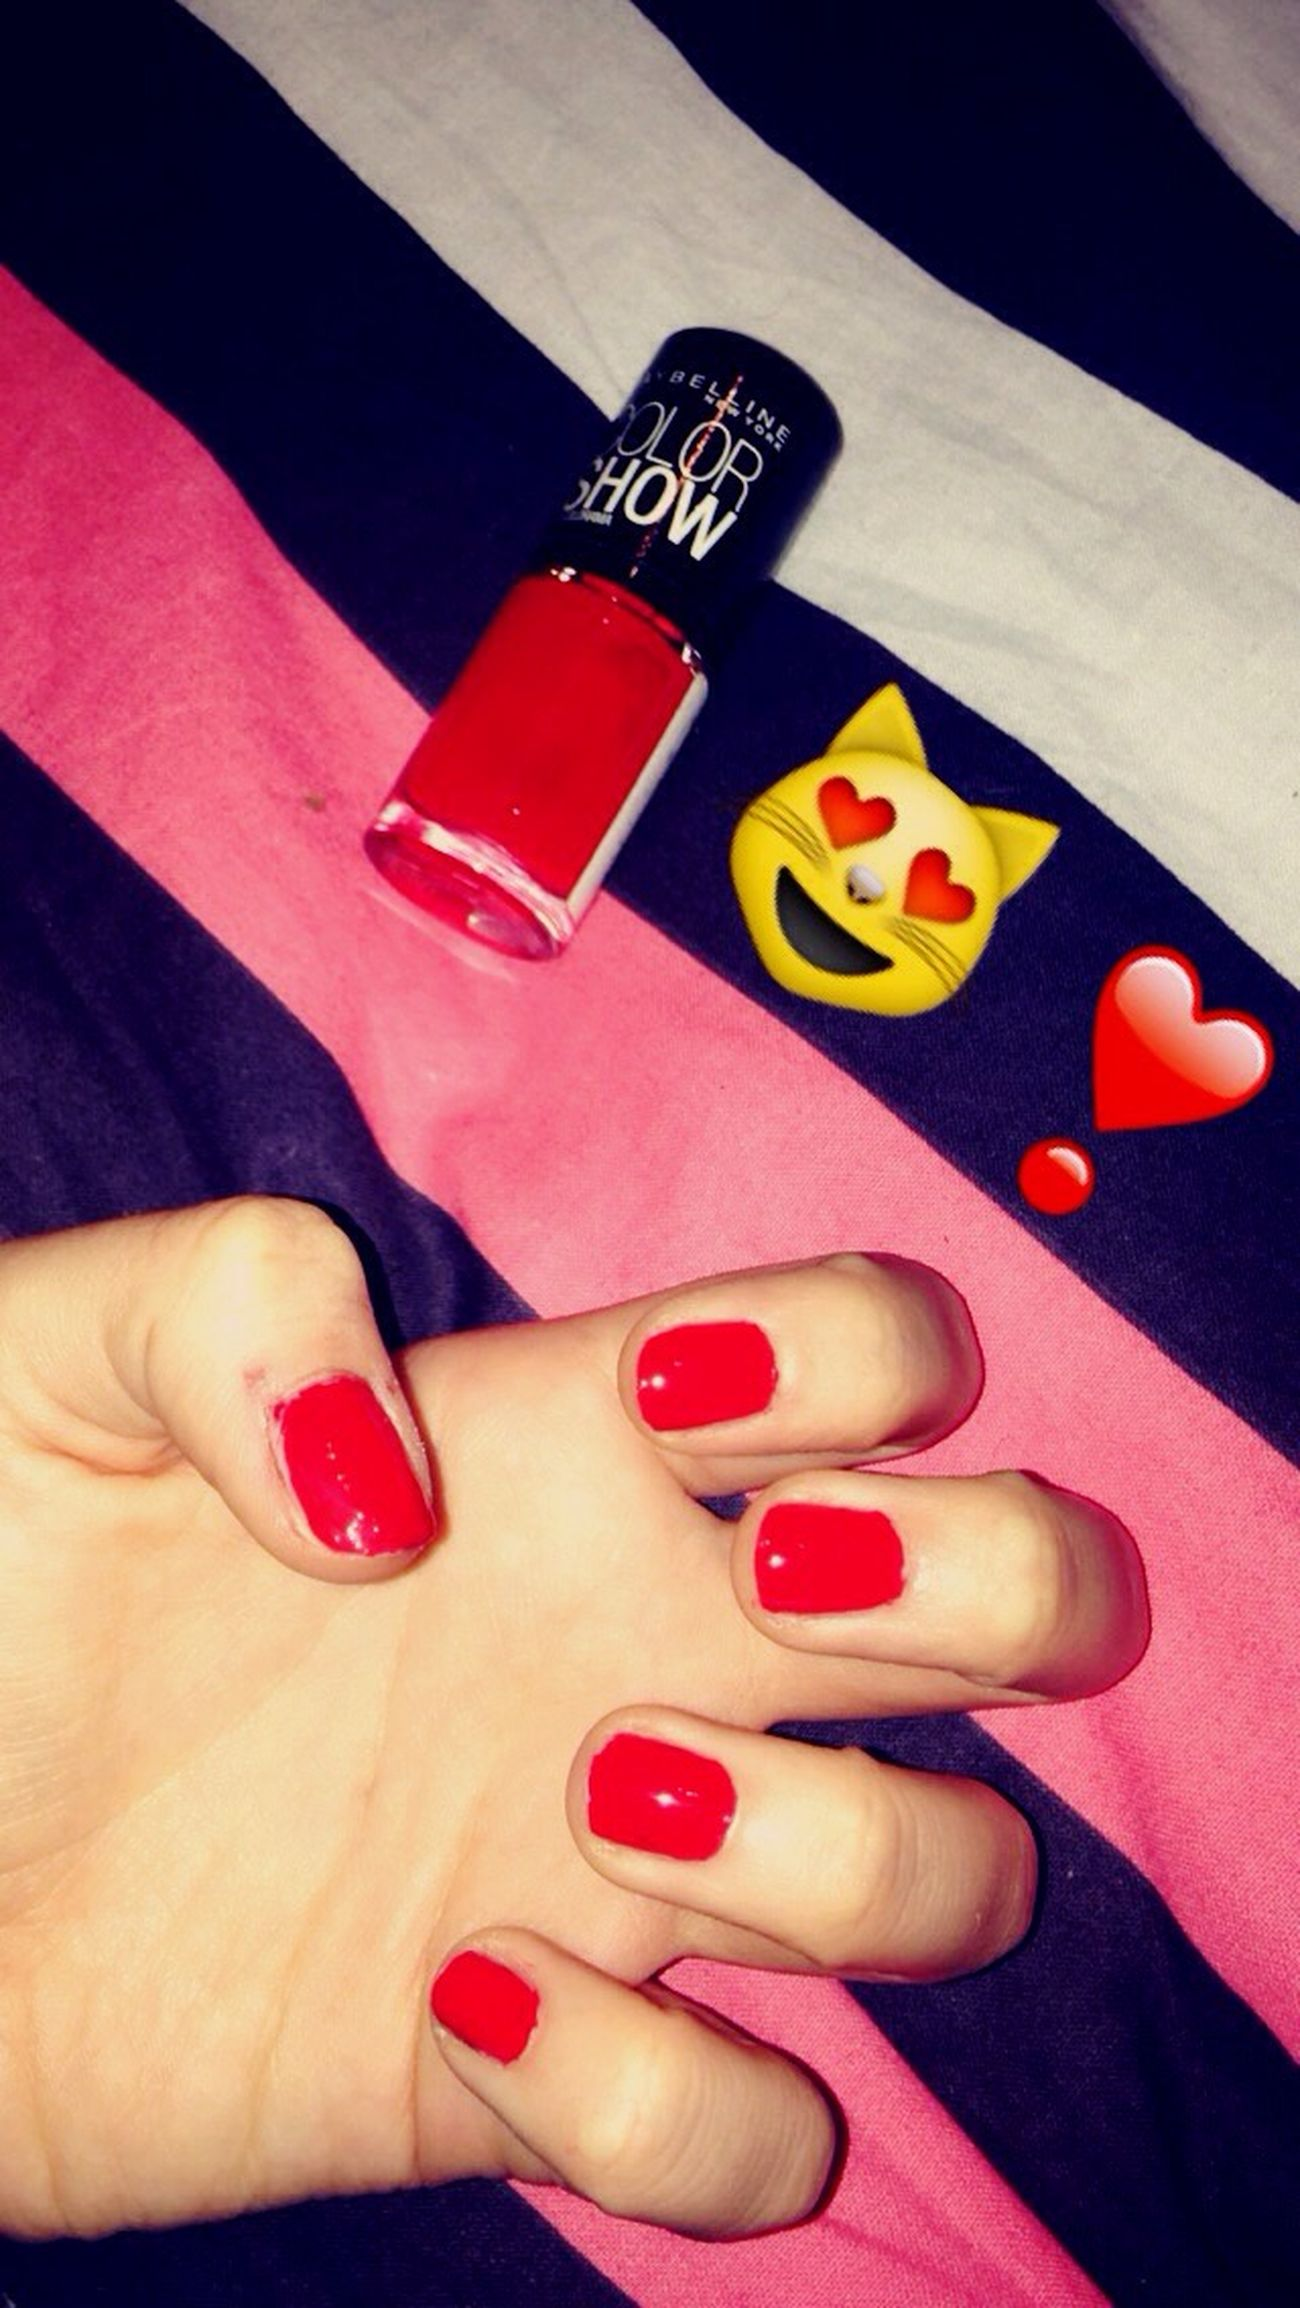 💅🏼 Taking Photos Enjoying Life That's Me Modeling Beautiful Model Girl Ongles Vernis Rouge Vacances